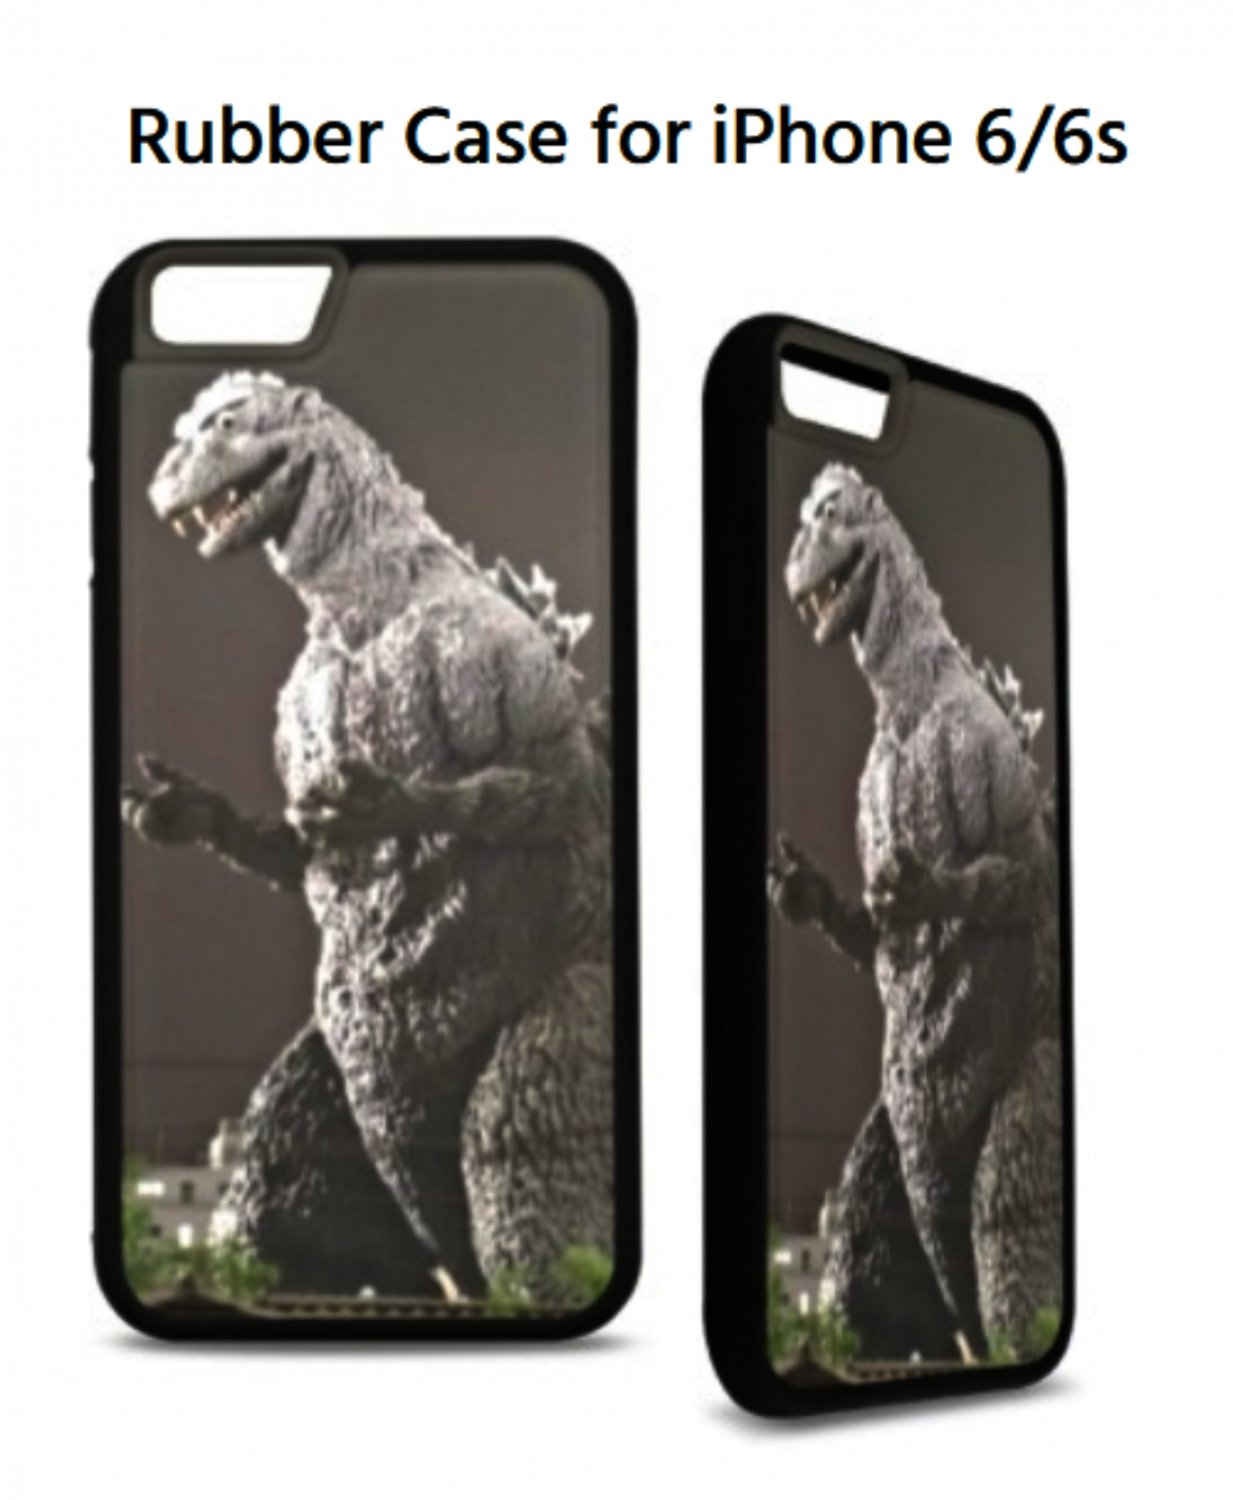 Godzilla Rubber Case for iPhone 6/6s